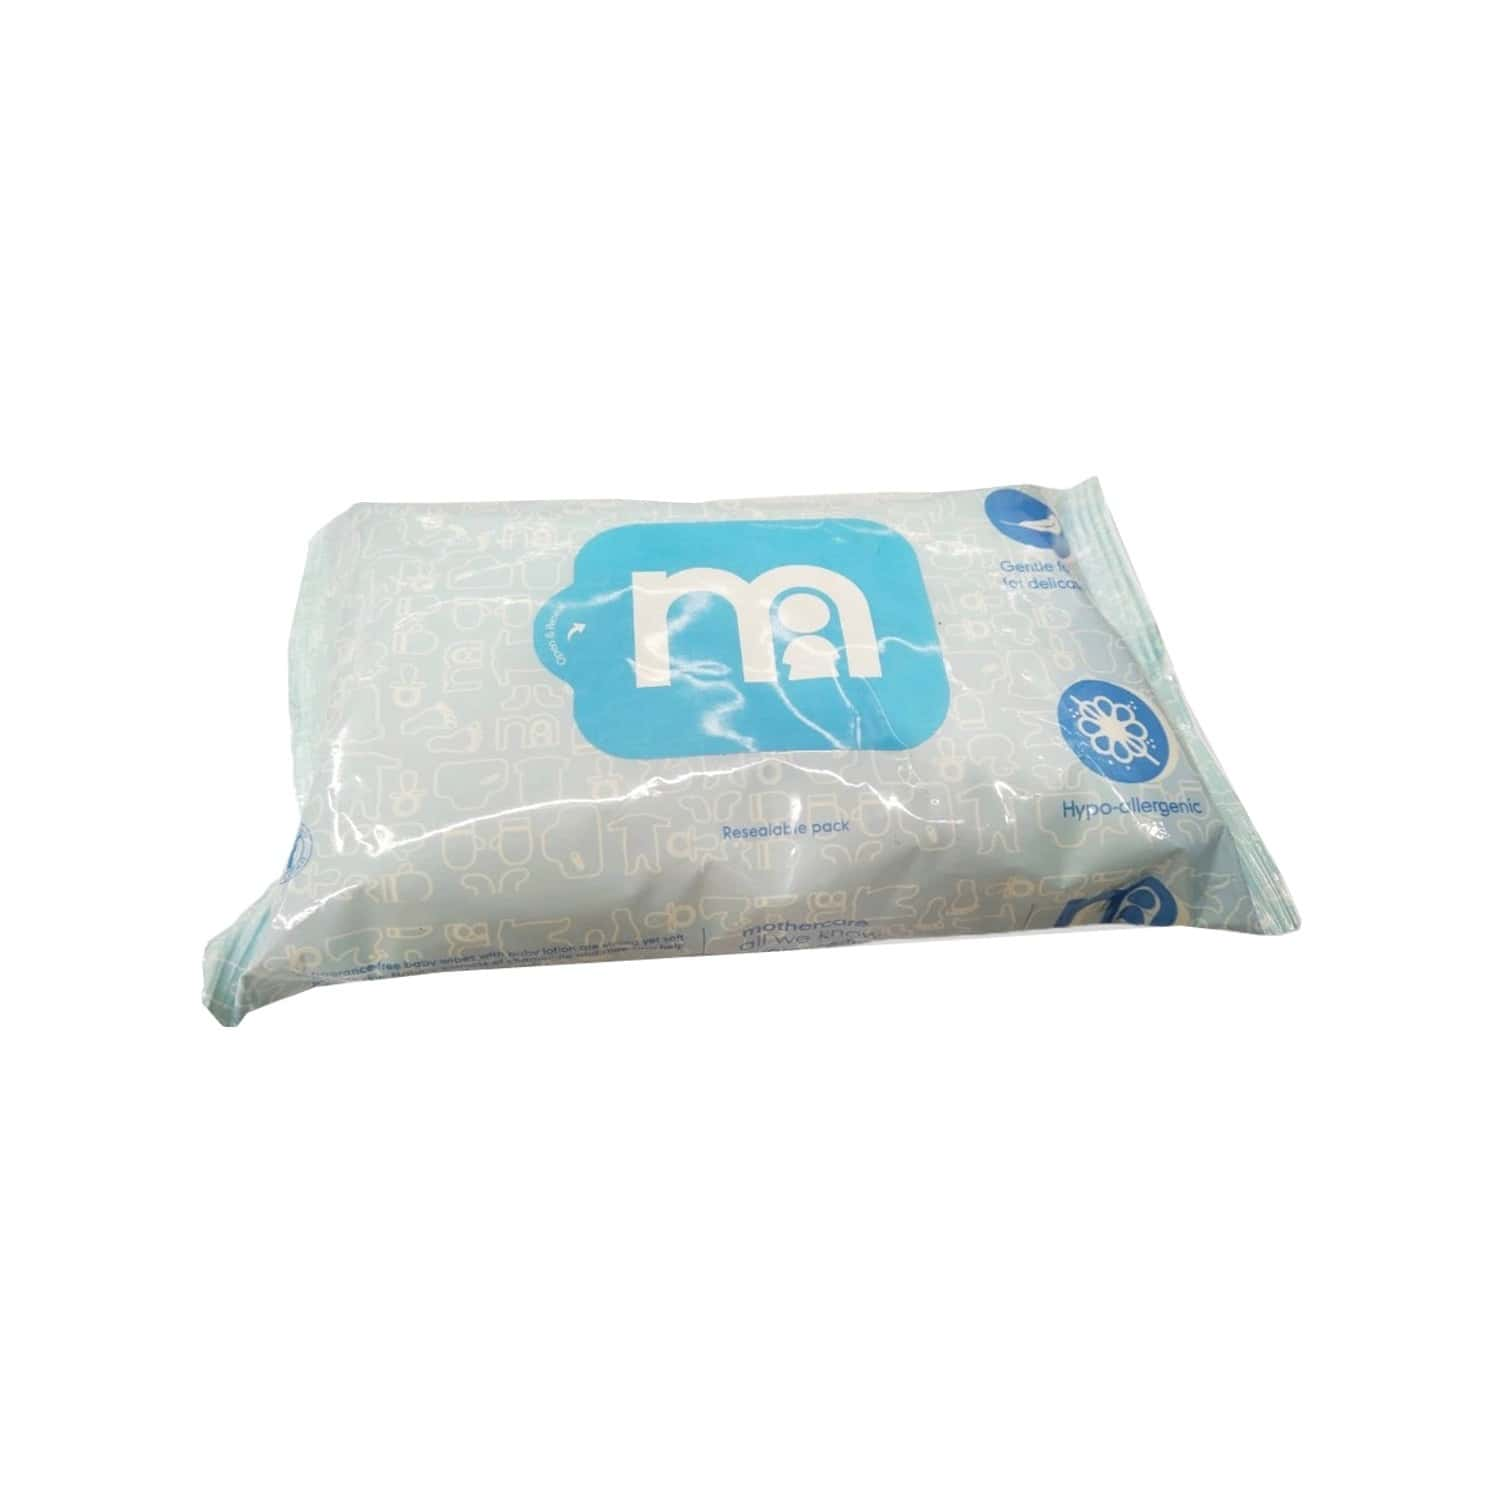 Mothercare Non Fragnanced Baby Wipes - 60 Wipes